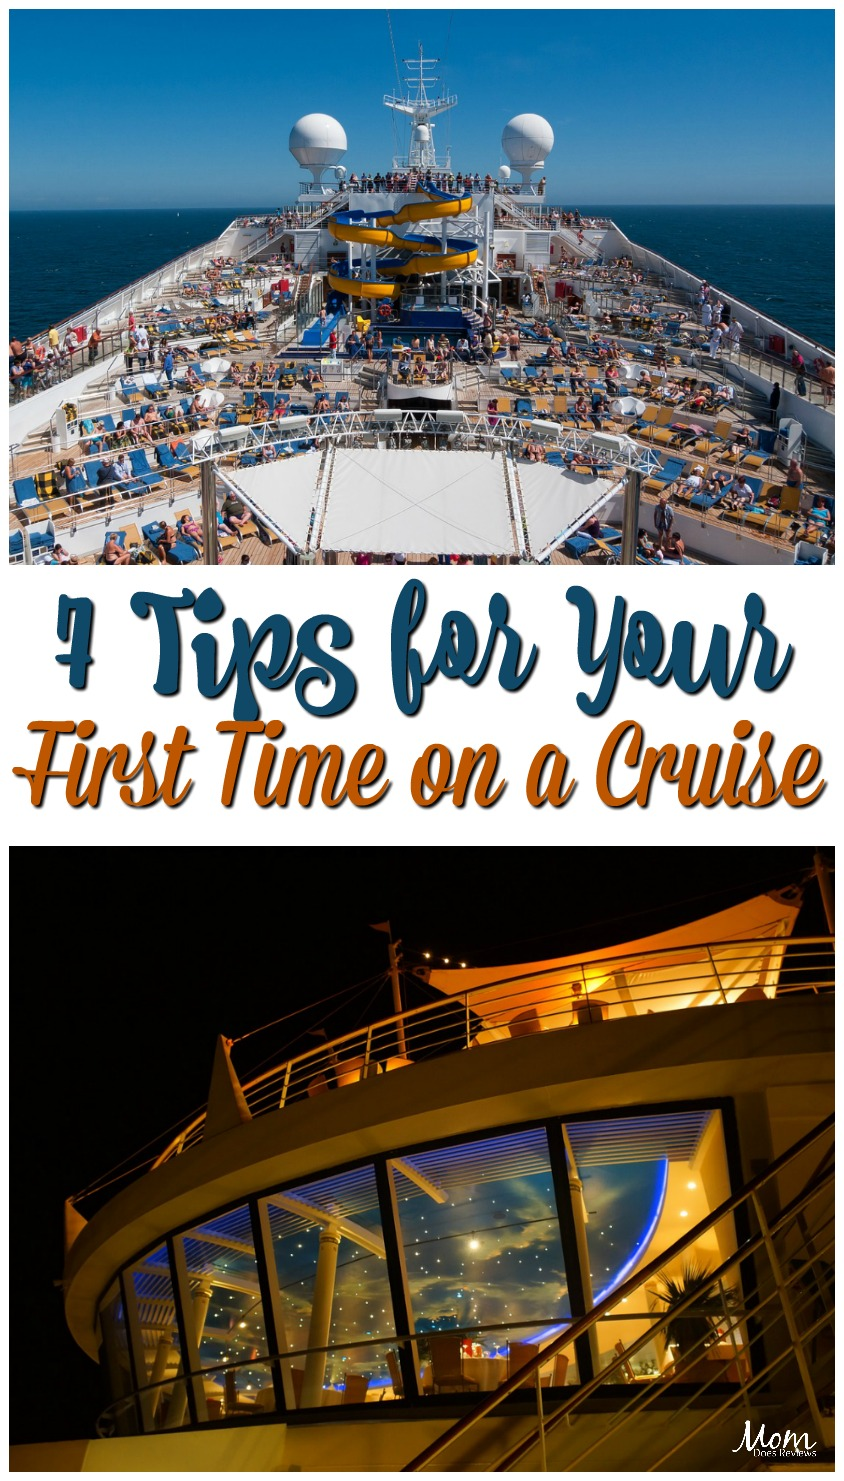 7 Tips for Your First Time on a Cruise #travel #cruise #vacation #destination